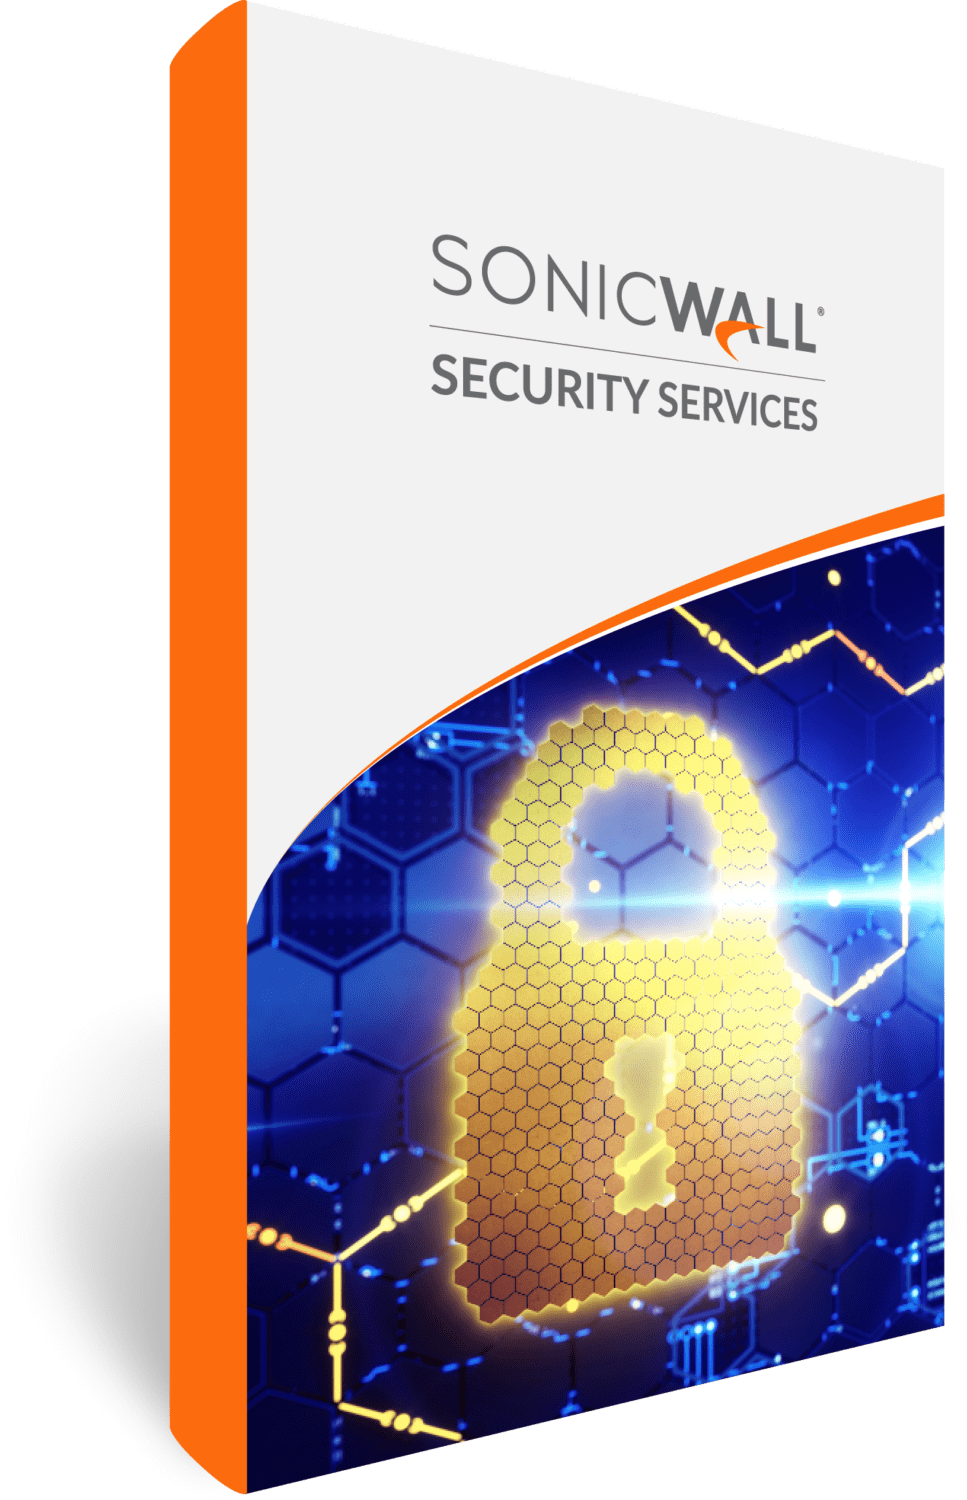 Sonicwall security services